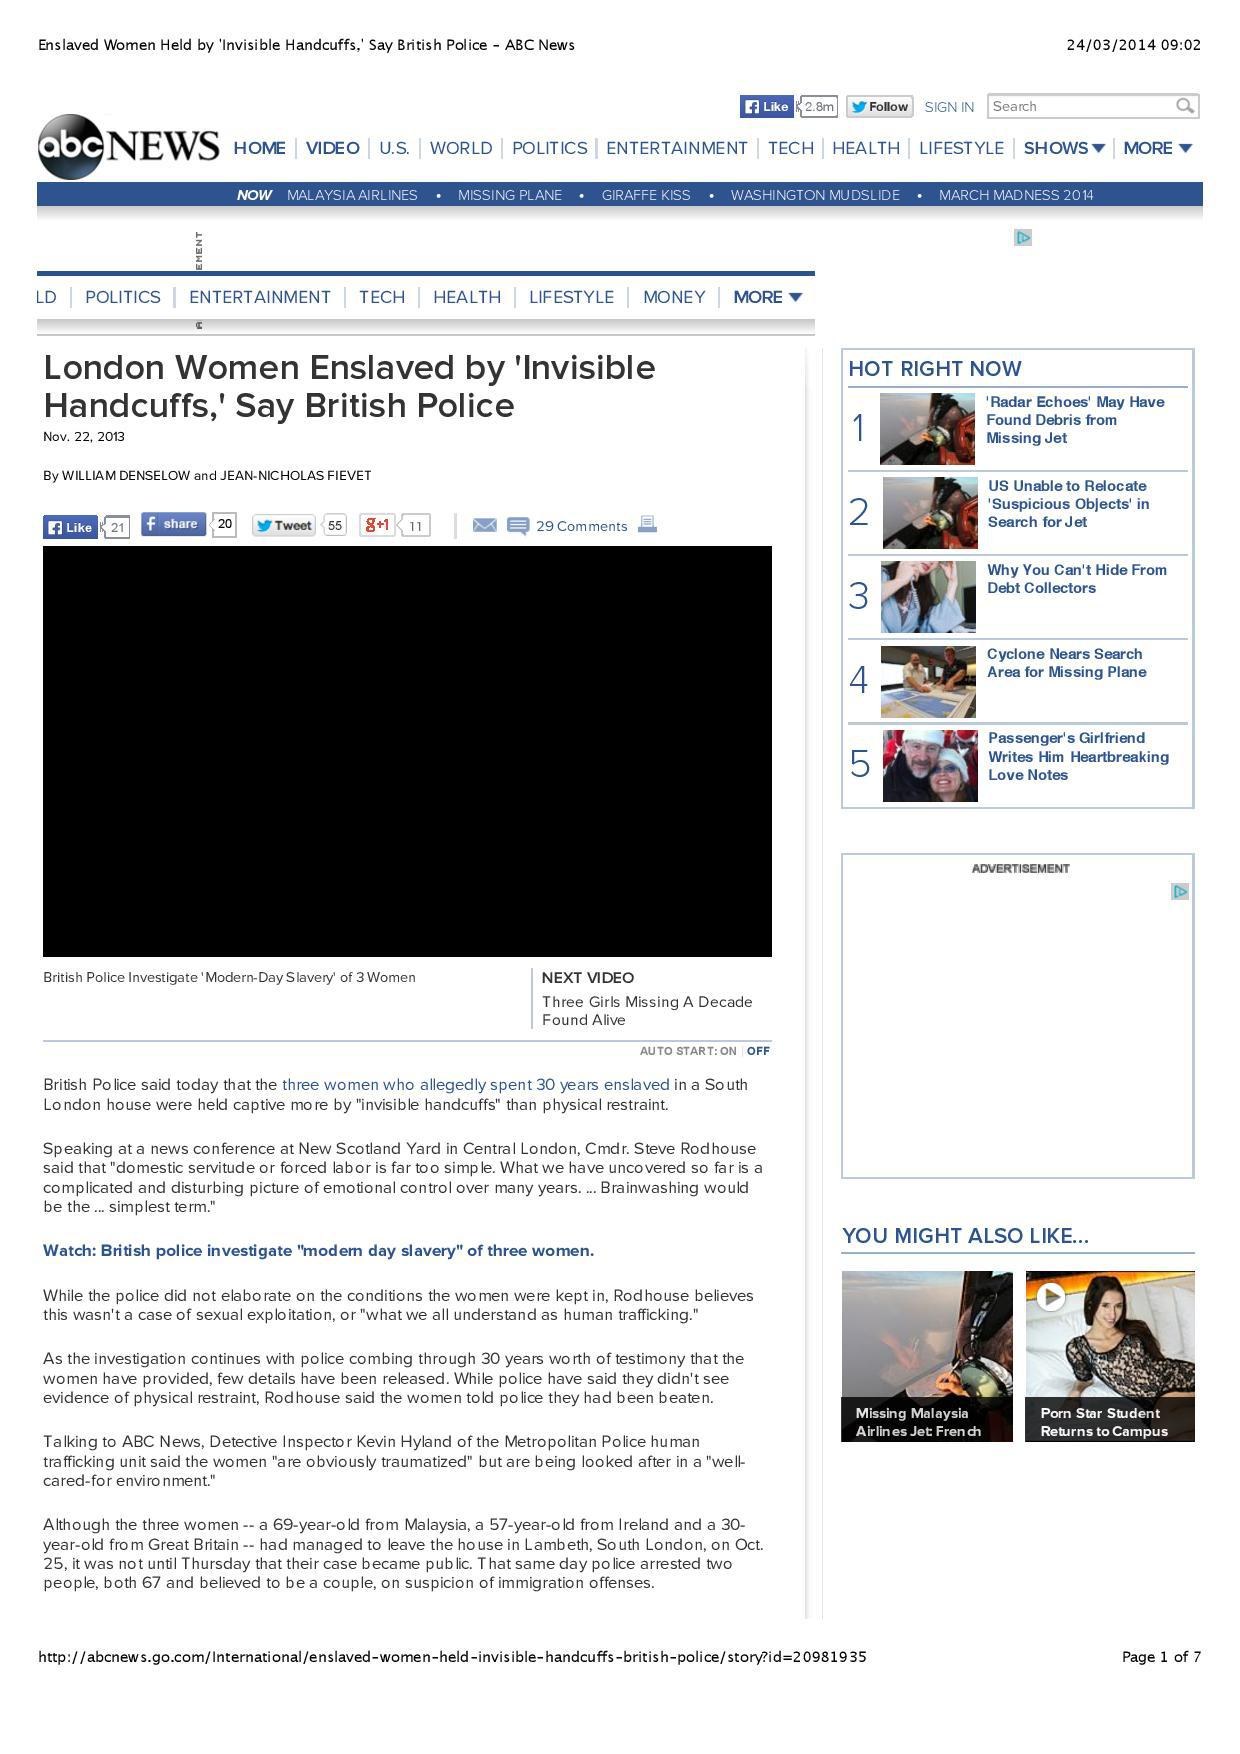 abc-news-enslaved-women-held-by-invisible-handcuffs-say-british-police-abc-news-page-001